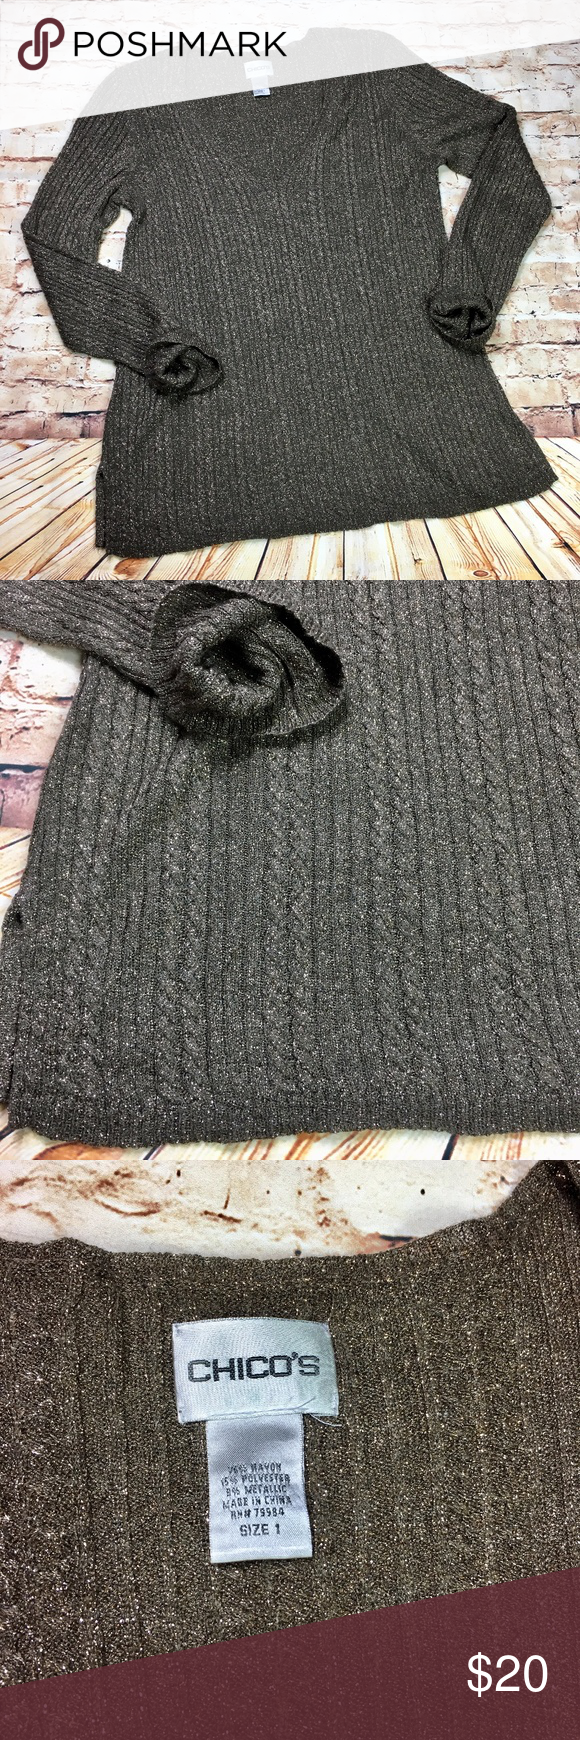 Chico's] Brown Metallic Sz 1 Cable Knit Sweater